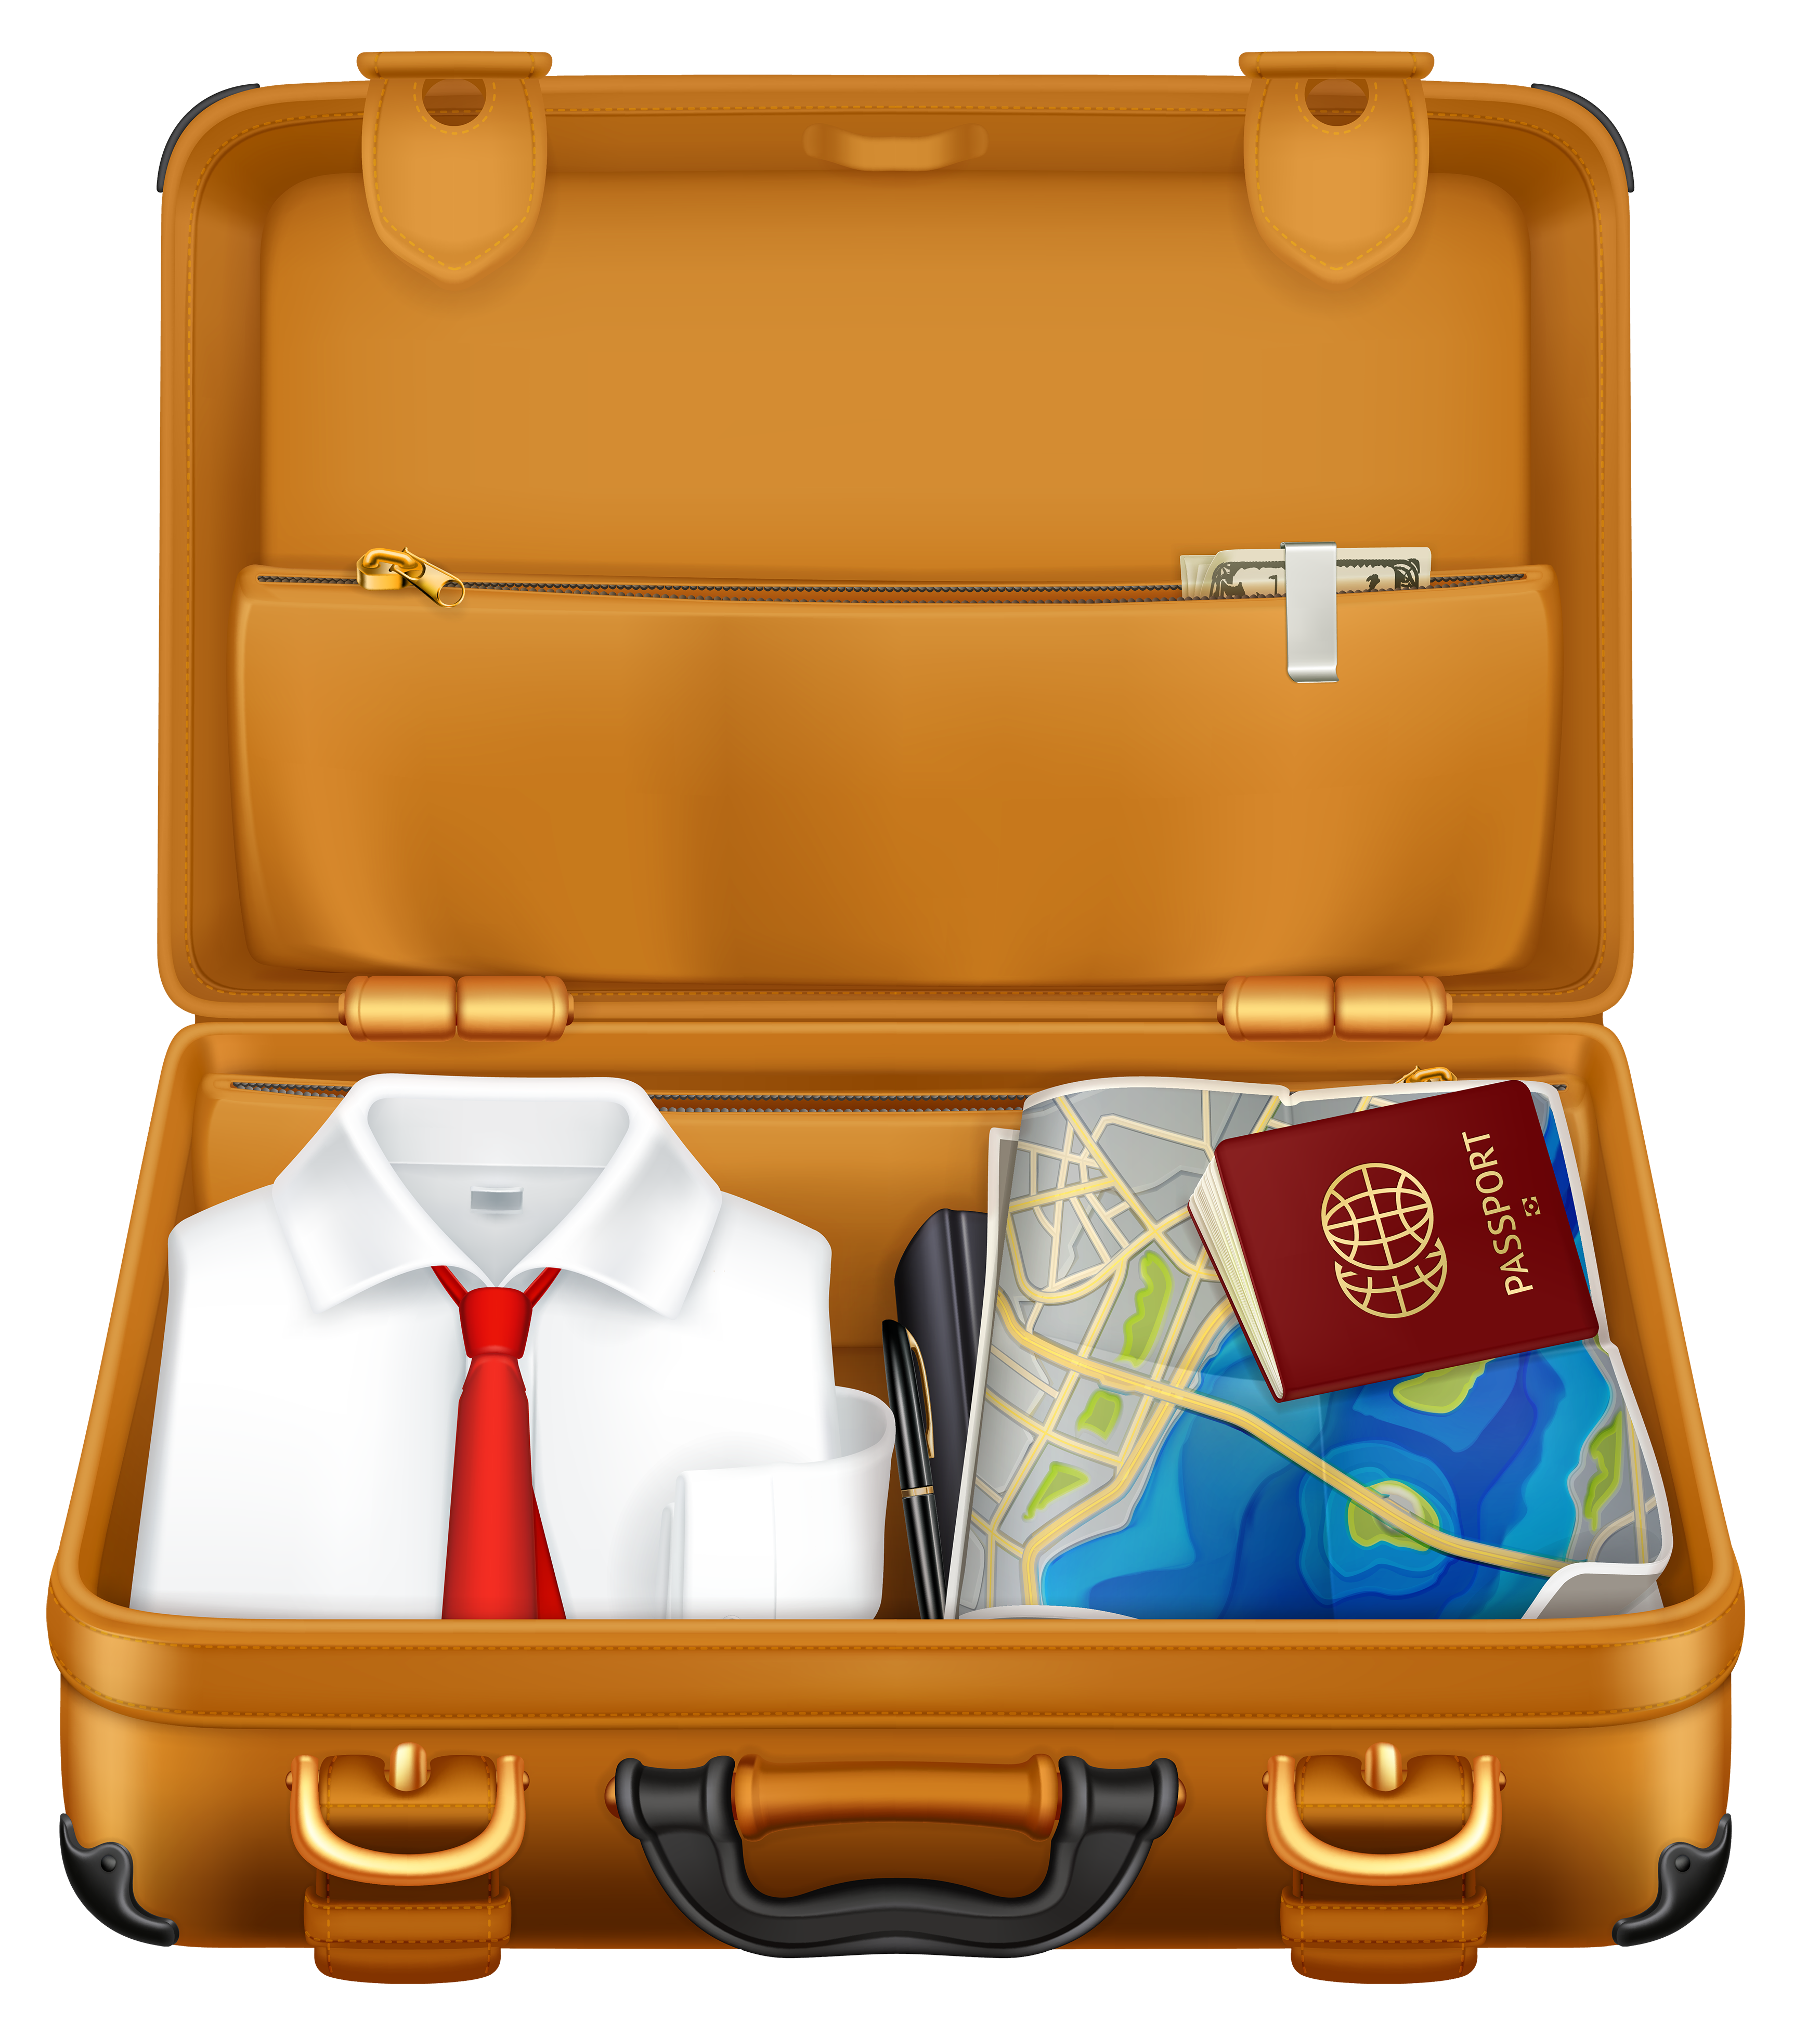 3500x3913 Brown Suitcase With Clothes And Passport Clipart Image